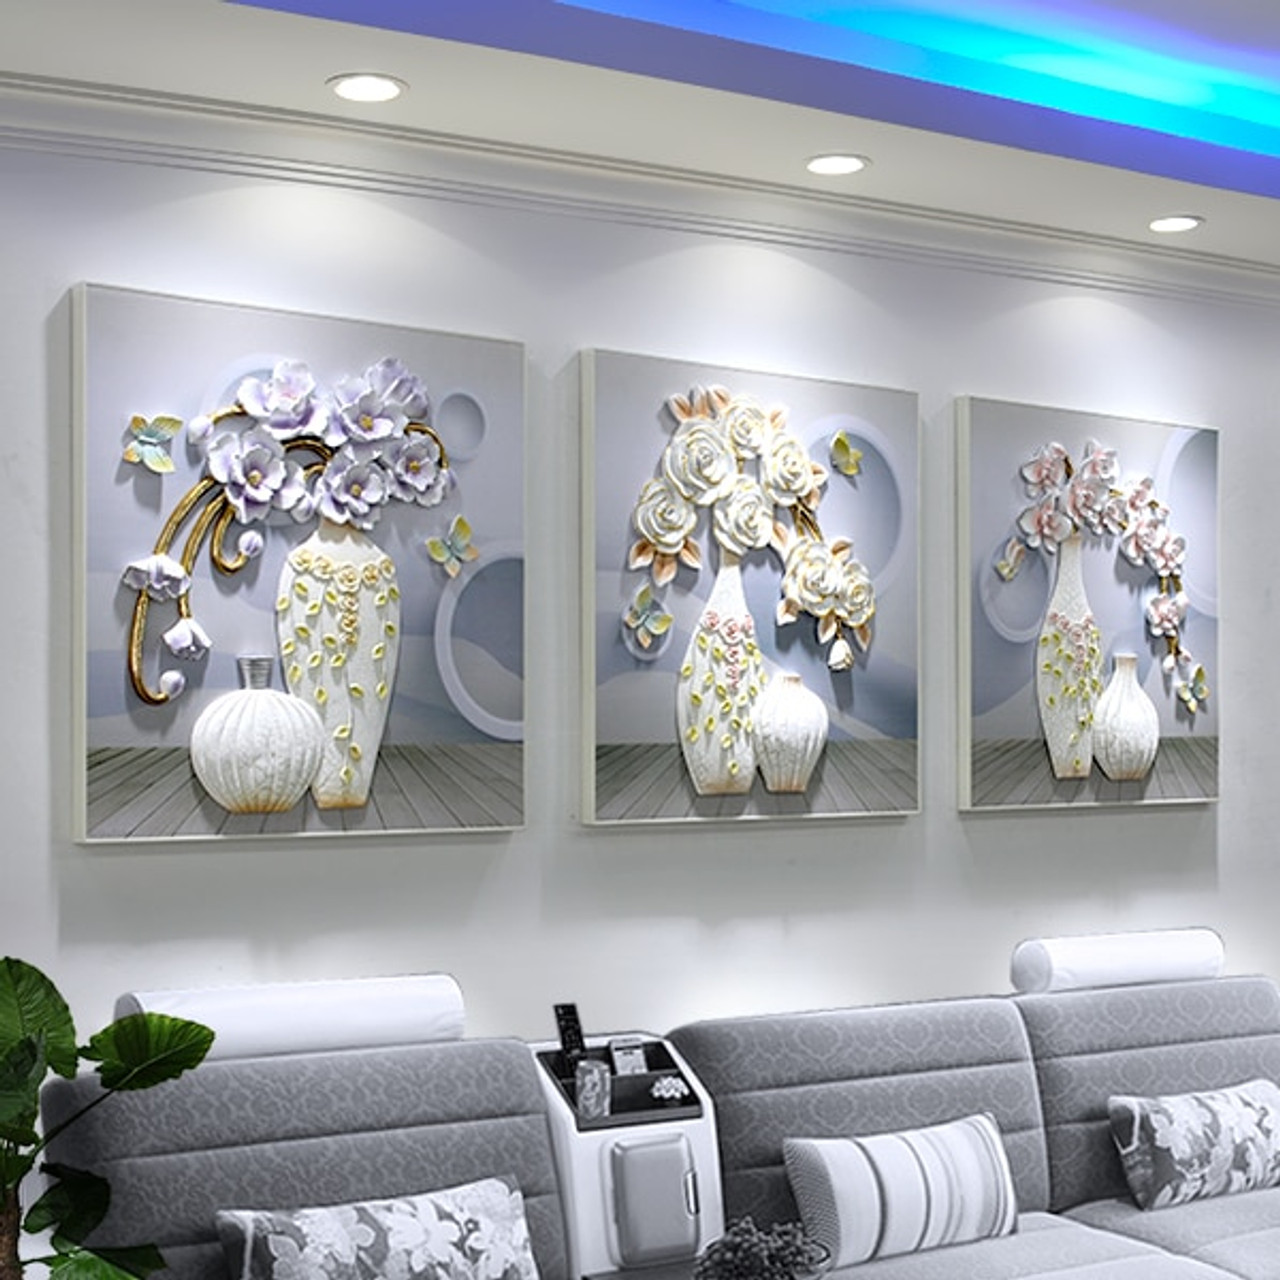 Décoration Murale En Relief sofa background wall decoration painting living room triptych frameless  painting room decoration mural 3d relief painting